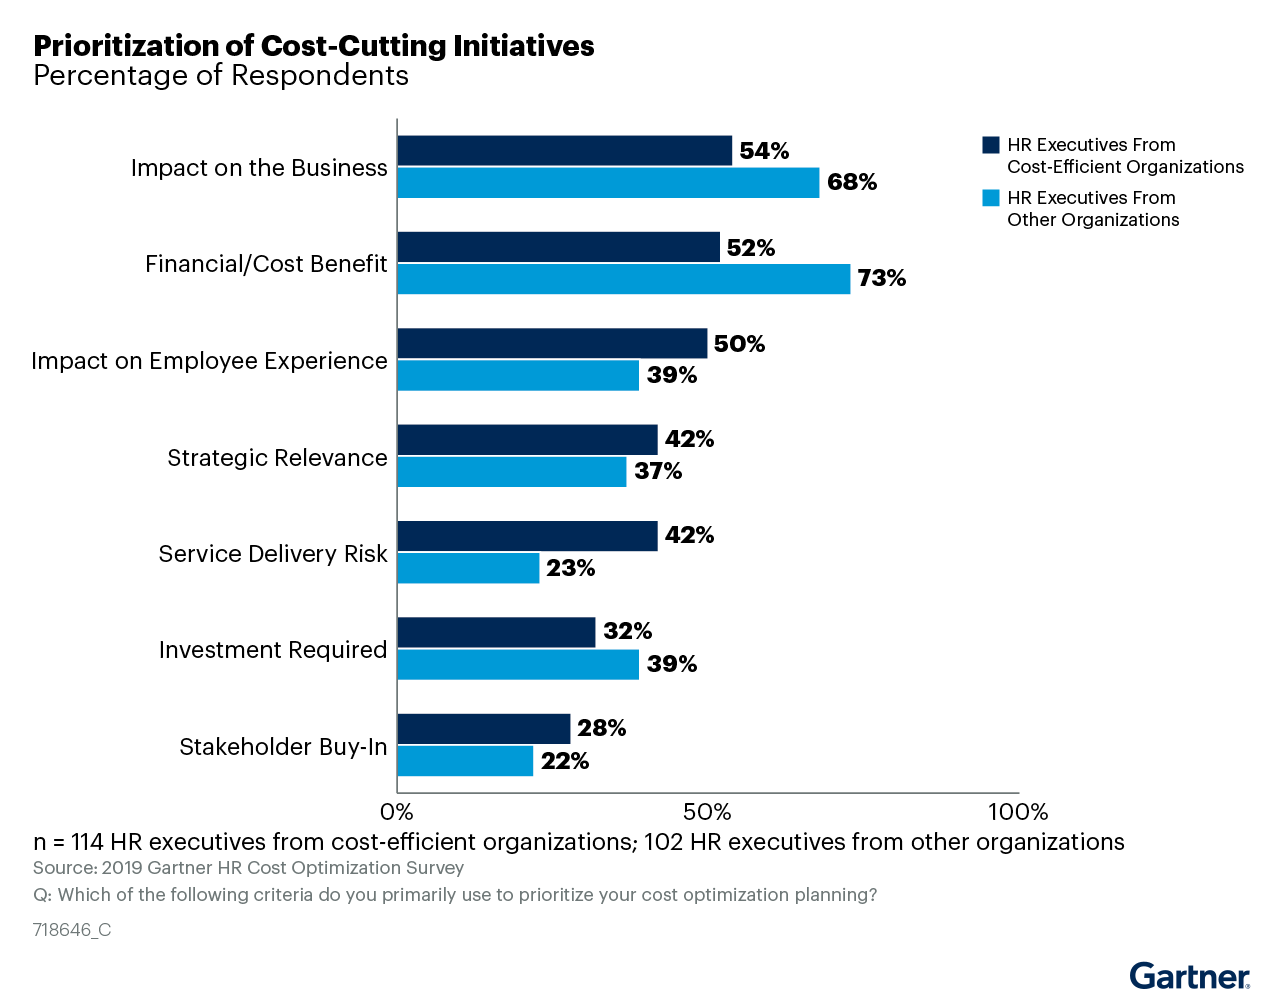 Figure 3: Prioritization of Cost-Cutting Initiatives